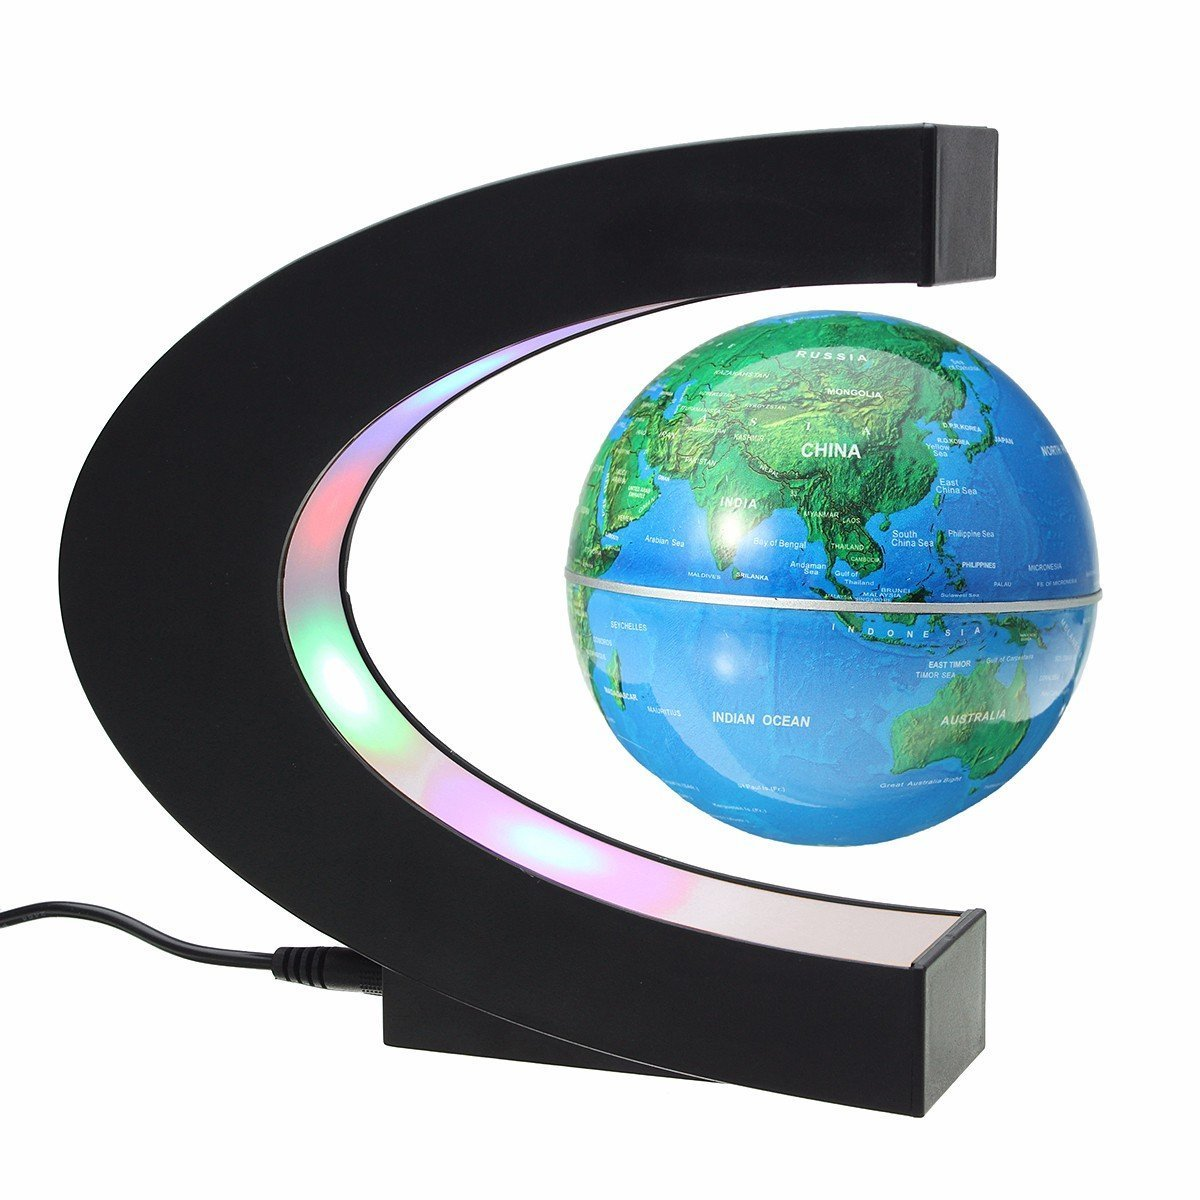 MECO 3'' Funny C Shape Magnetic Levitation Floating Globe World Map with Colored LED Light Anti Gravity Globe for Children Gift Home Office Desk Decoration Blue